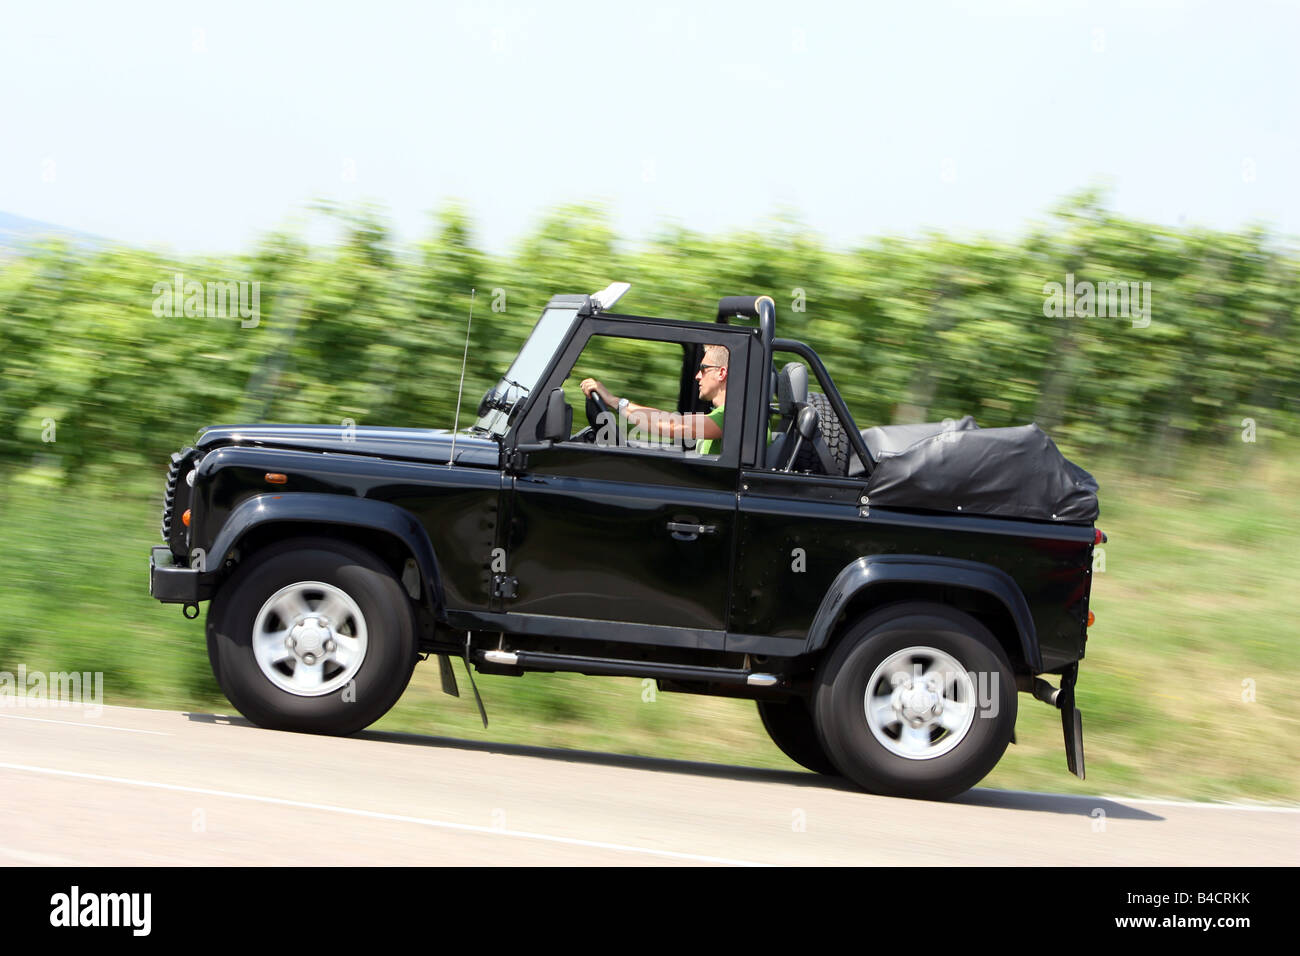 land rover defender convertible two td5 model year 2006 black stock photo royalty free image. Black Bedroom Furniture Sets. Home Design Ideas